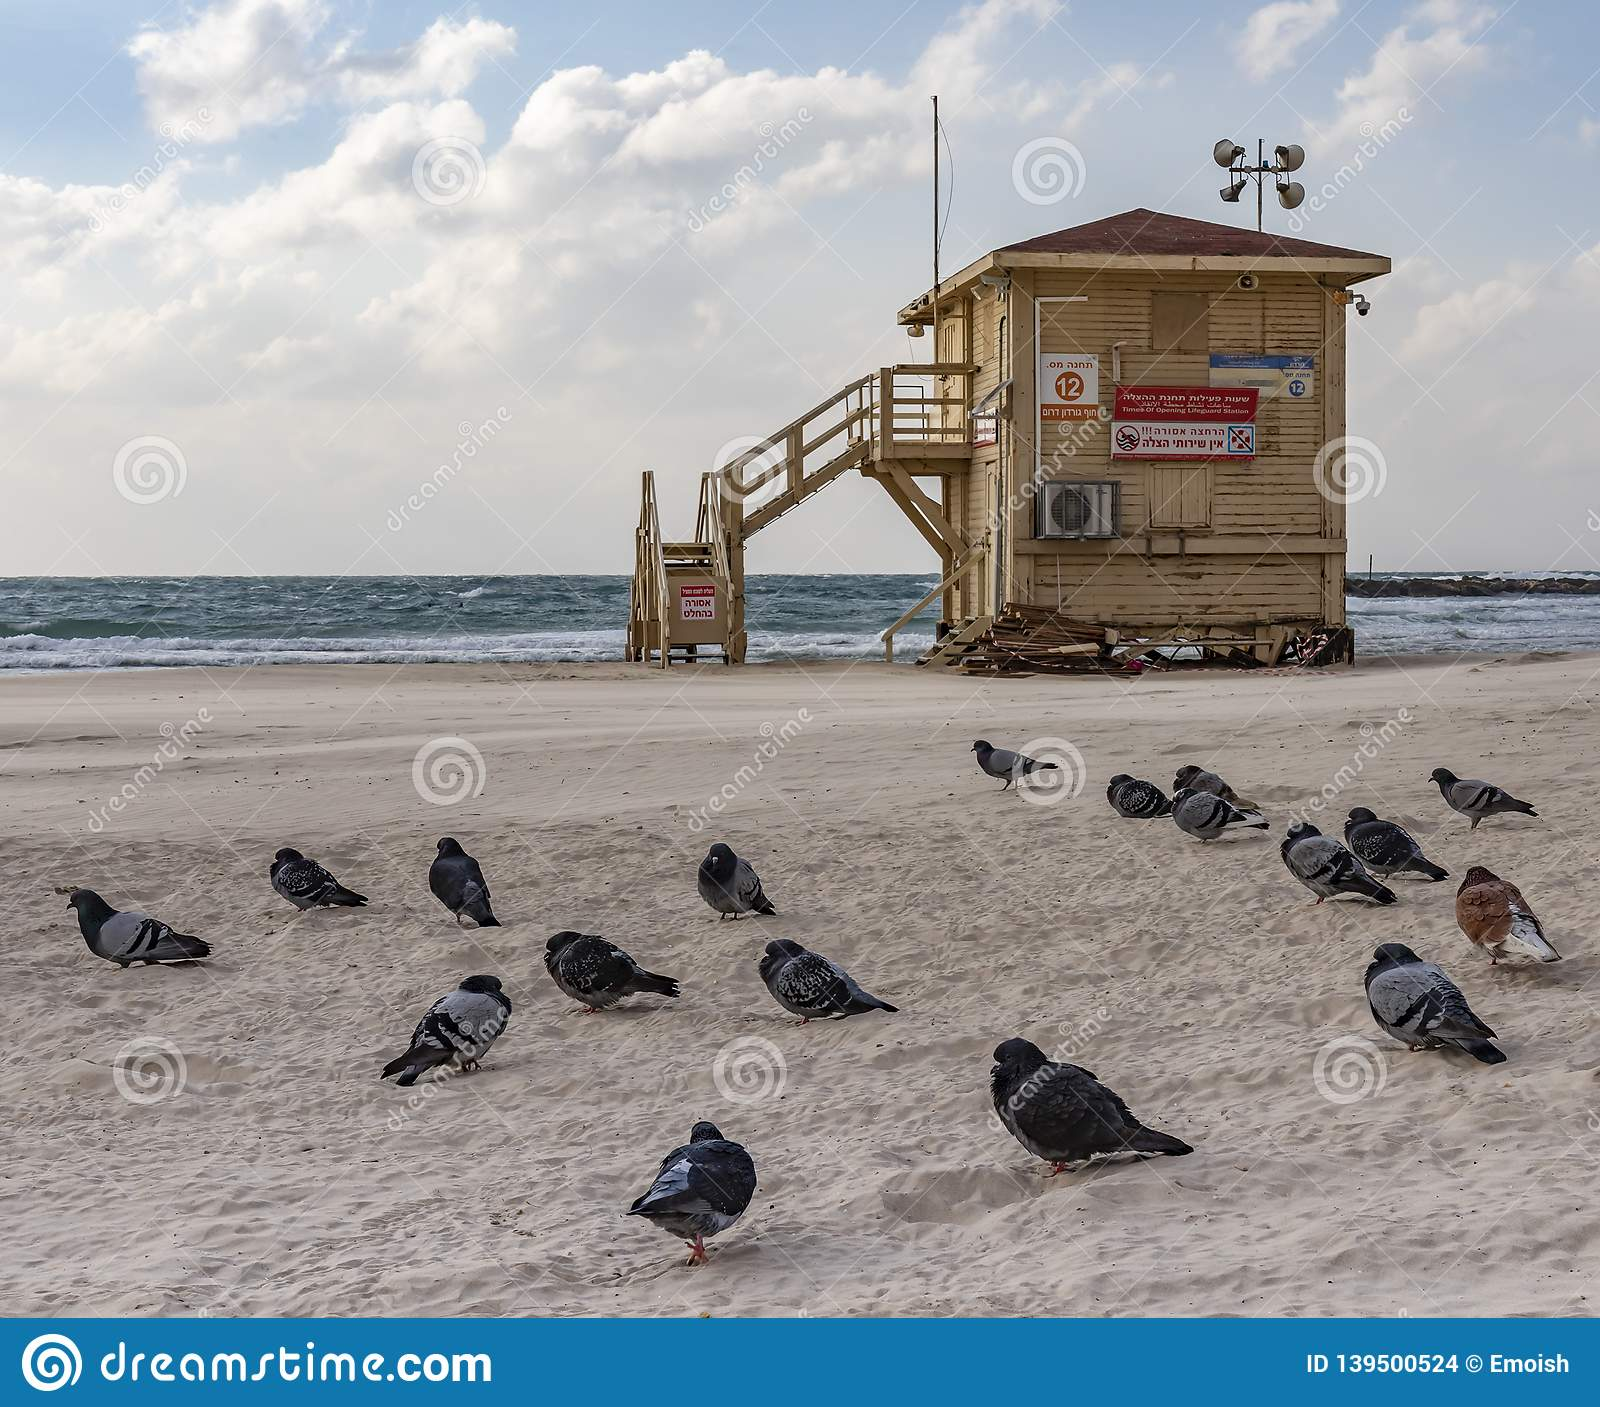 Pigeons and a Closed Lifeguard Shack on a Deserted Beach